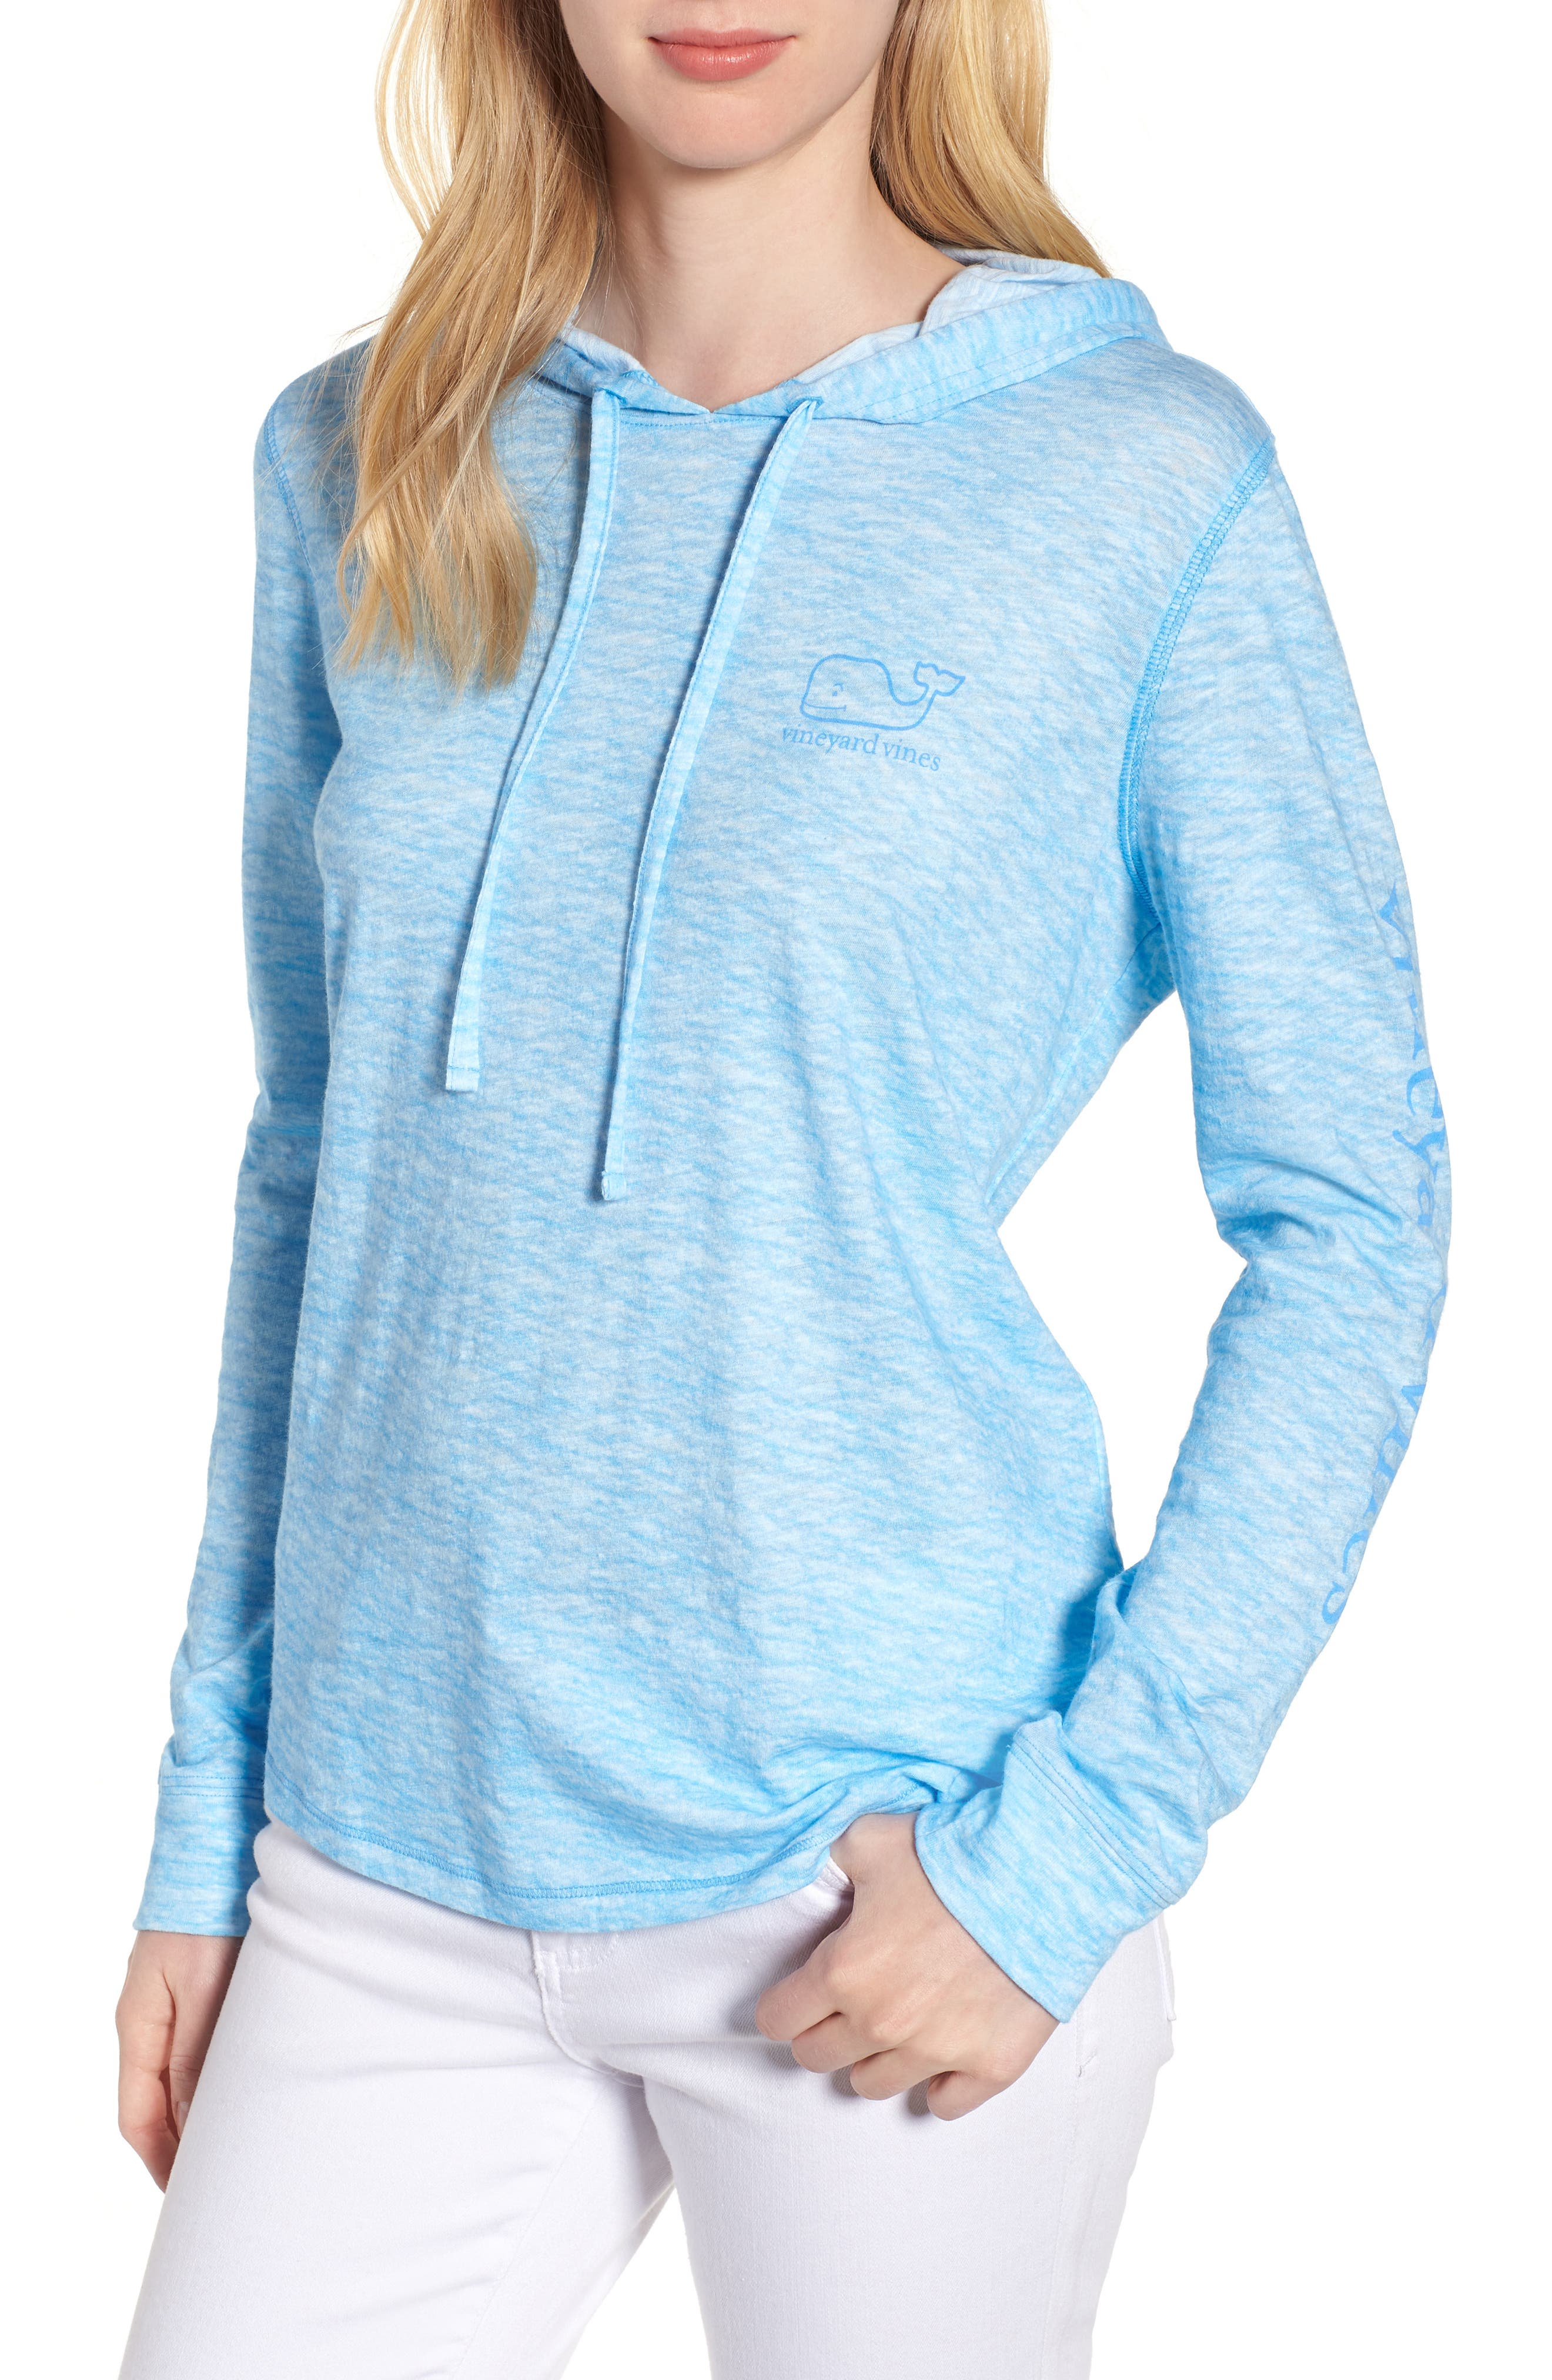 VINEYARD VINES,                             Whale Hoodie,                             Main thumbnail 1, color,                             474